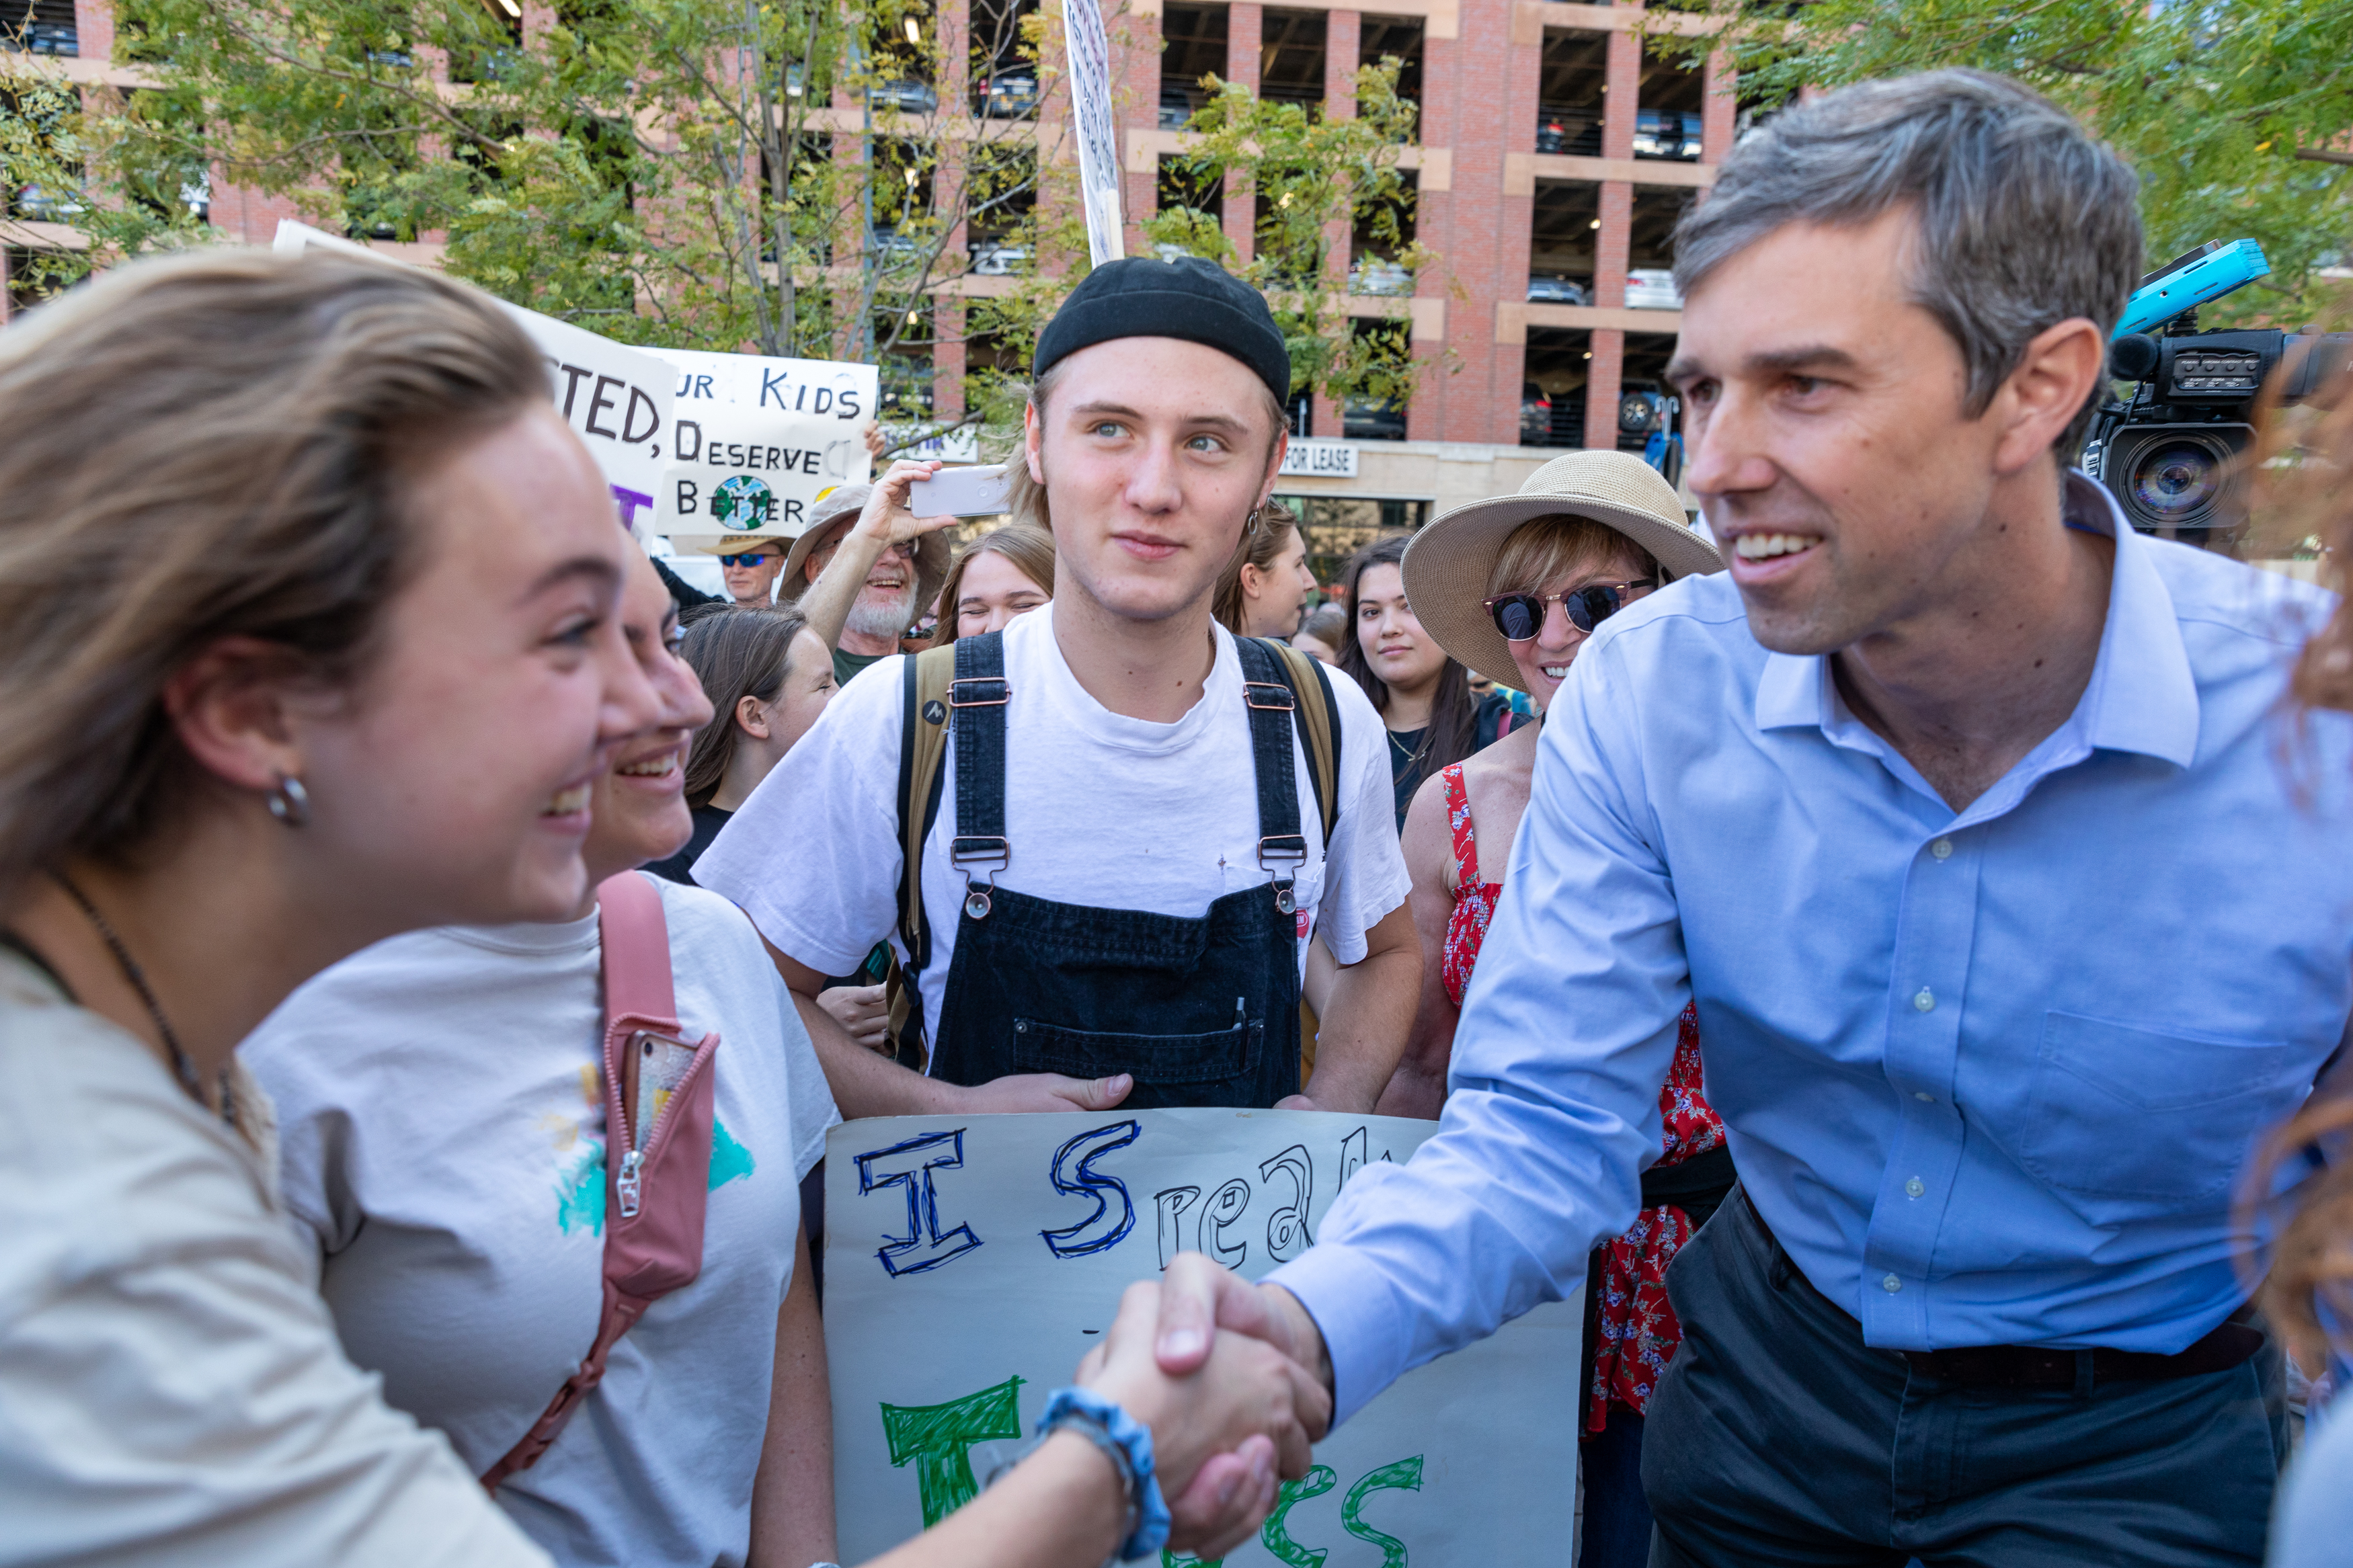 Presidential candidate Beto O'Rourke shakes hands with a youth protestor at Union Station.